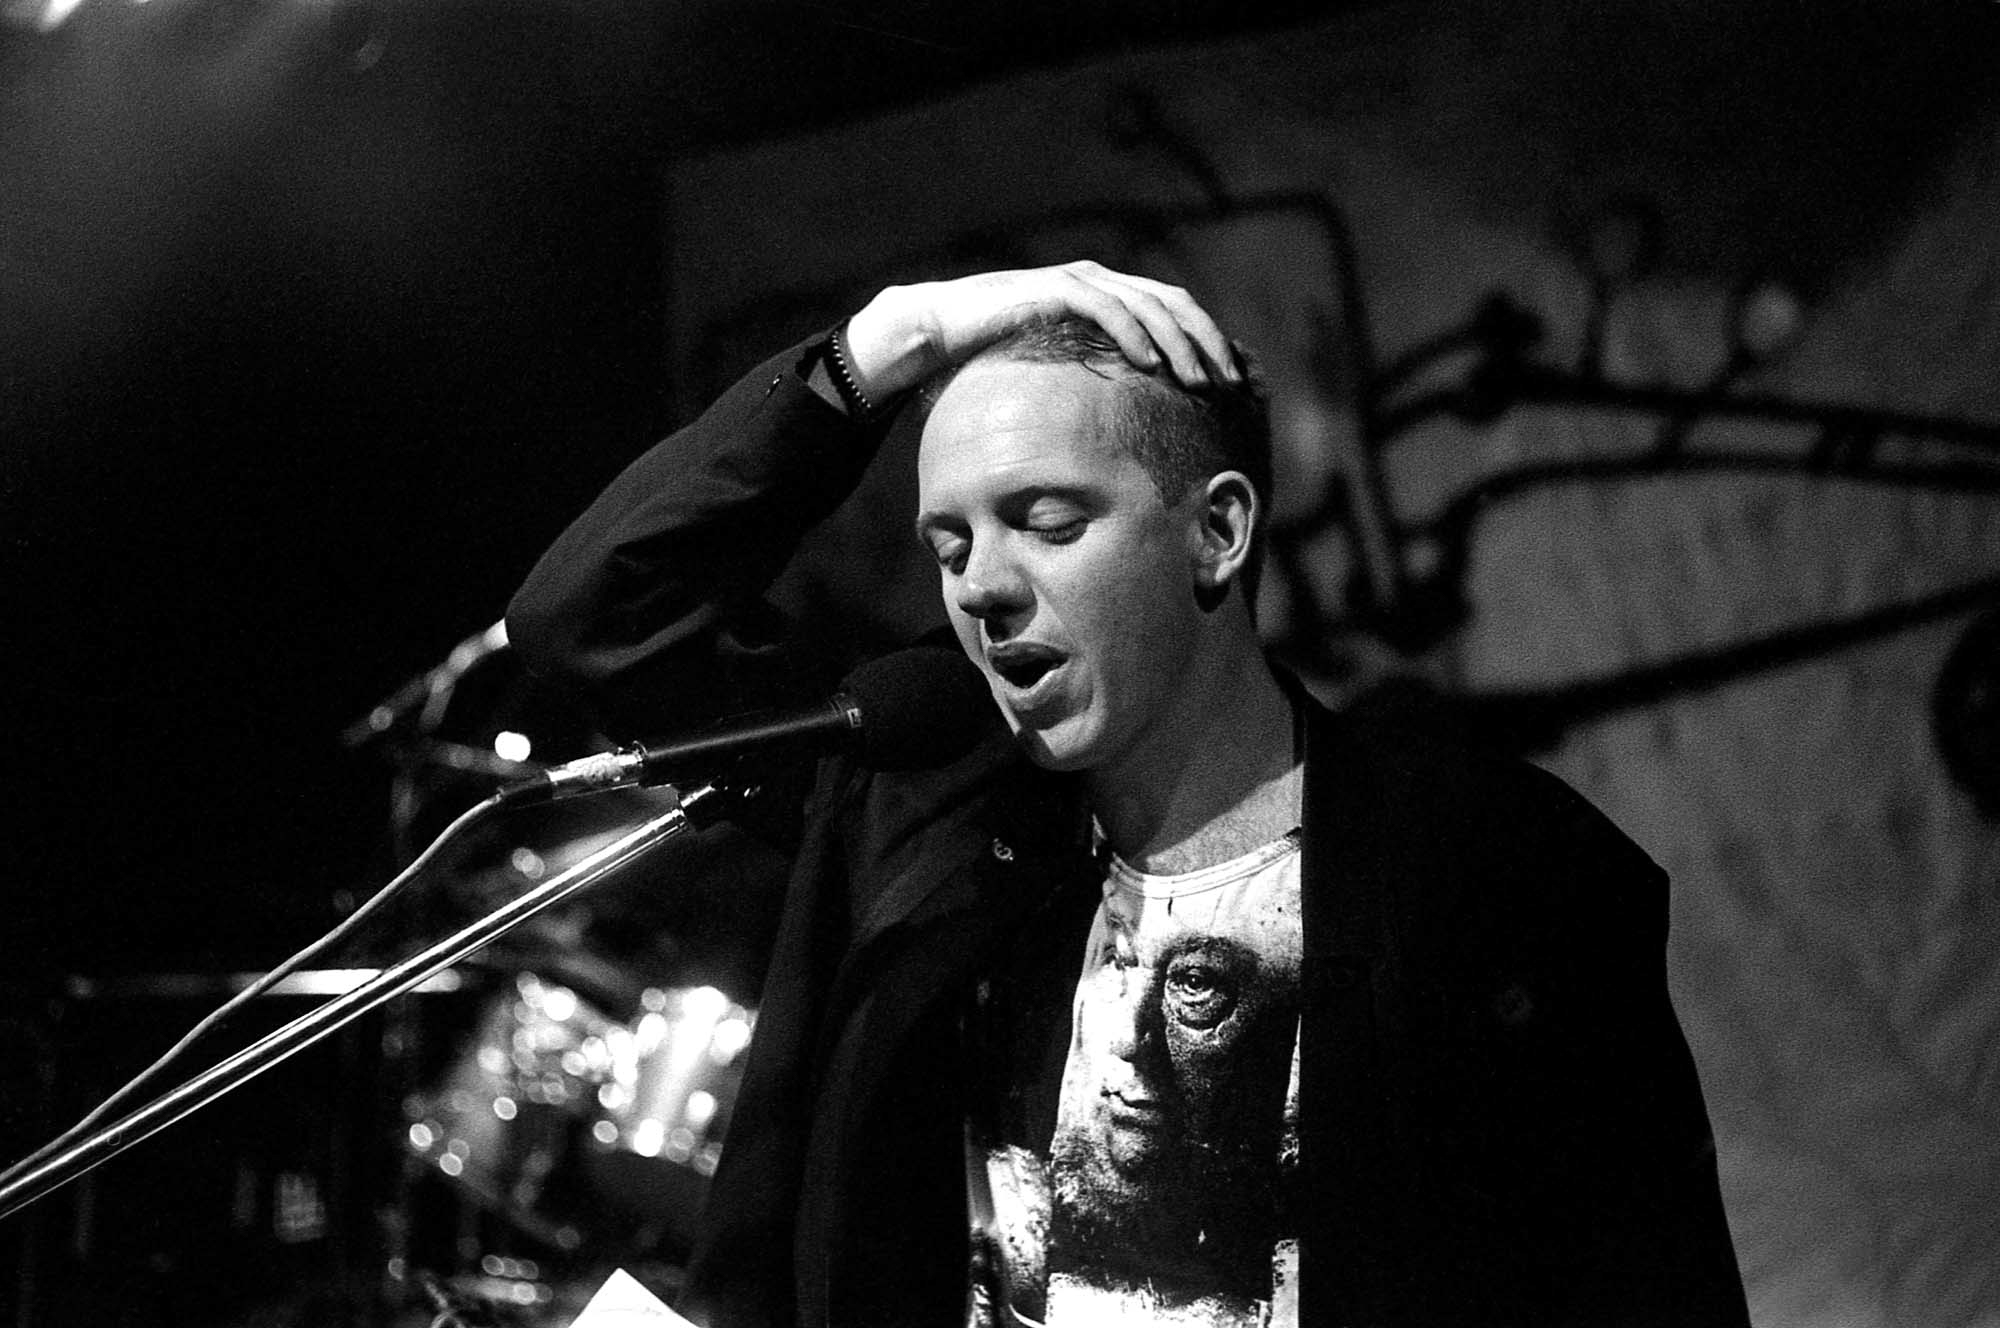 1989: Ralph Rabie, known by his performing name of Johannes Kerkorrel, on stage at the Warehouse at the Market Theatre in Johannesburg. Rabie took his own life in 2002.